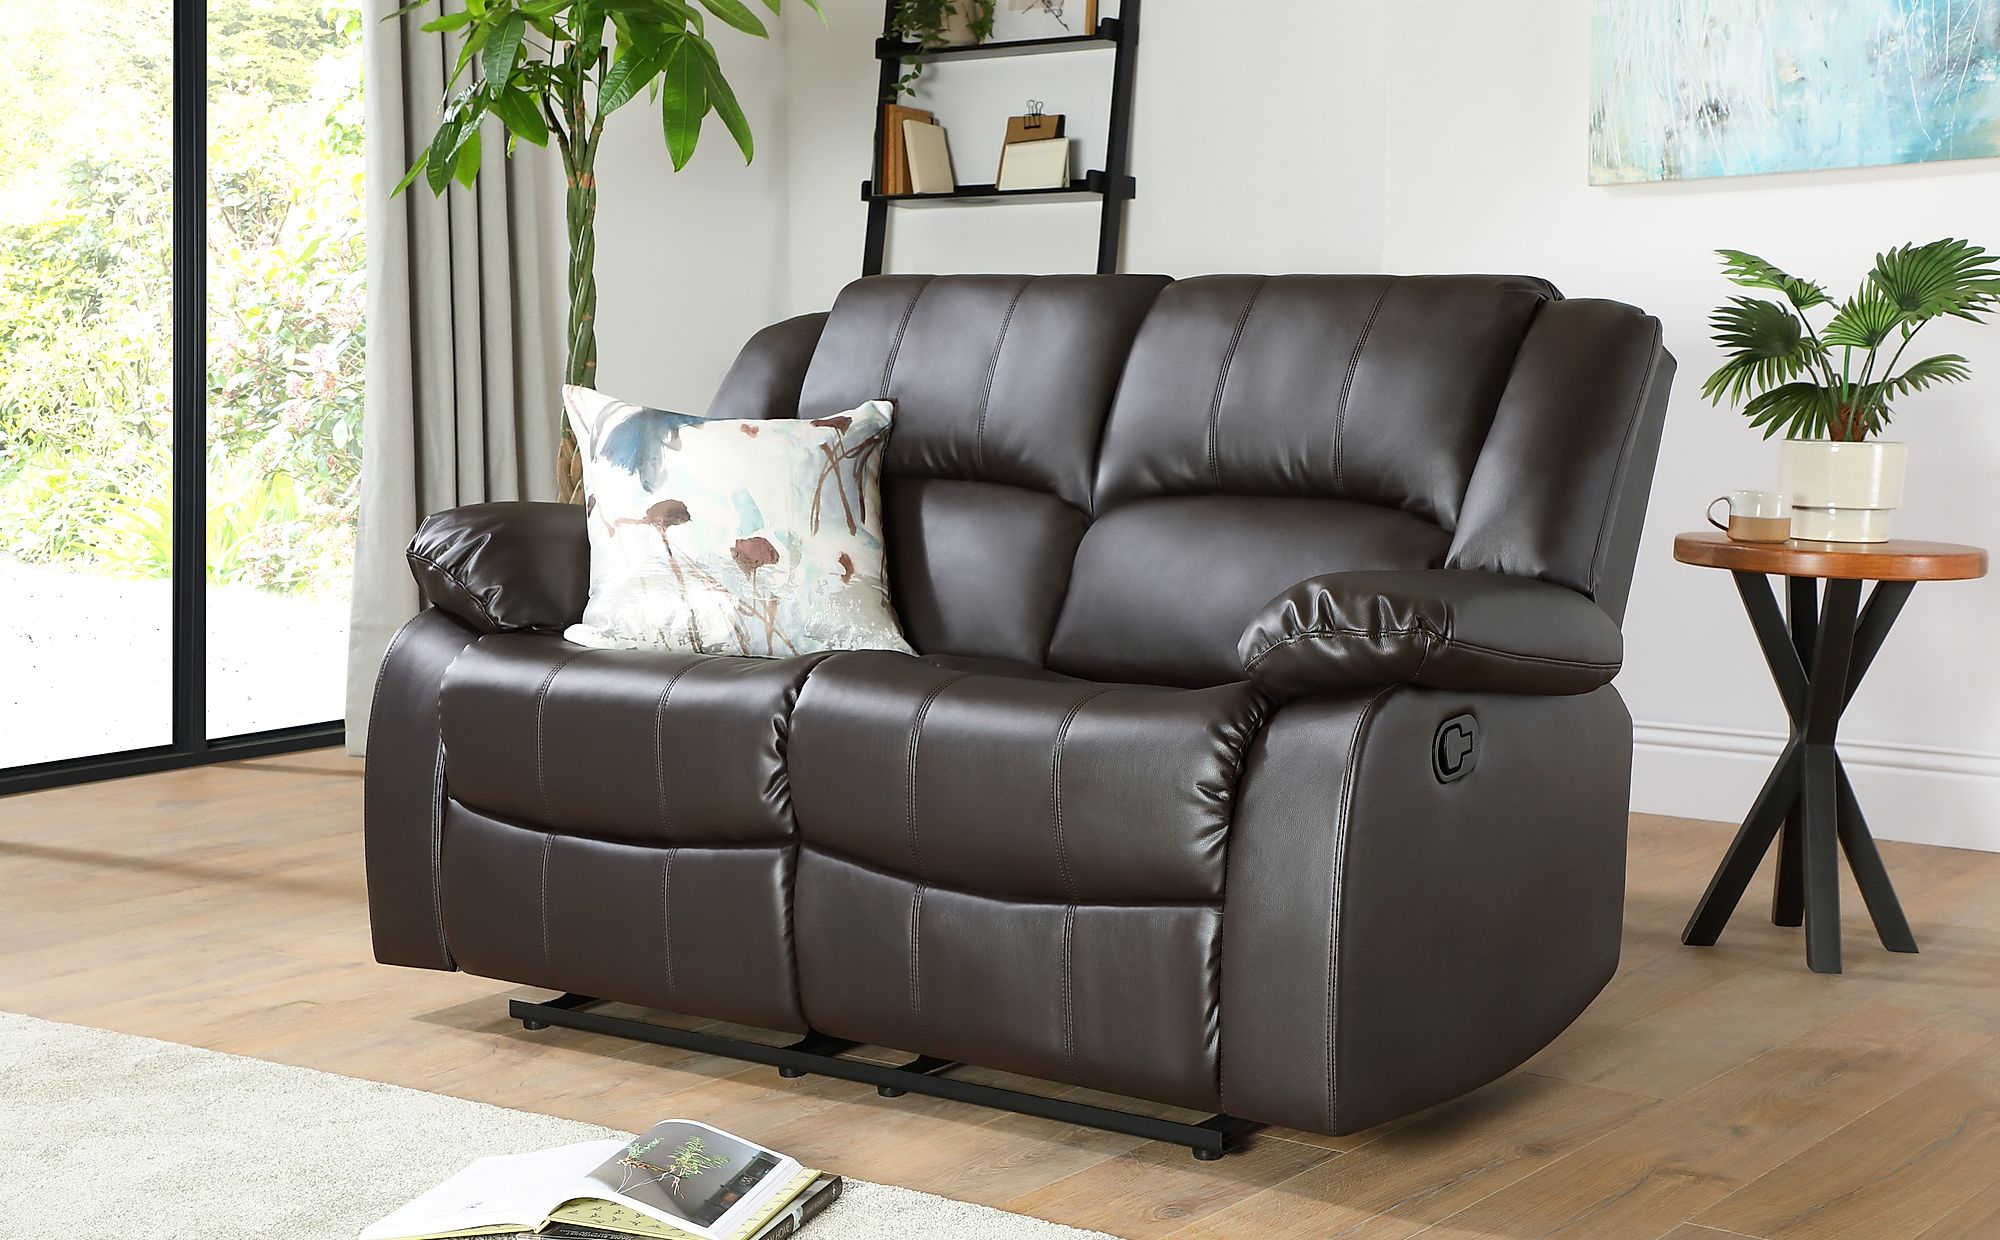 Dakota Brown Leather 2 Seater Recliner Sofa   Furniture Choice Intended For 2 Seater Sofas (View 15 of 15)